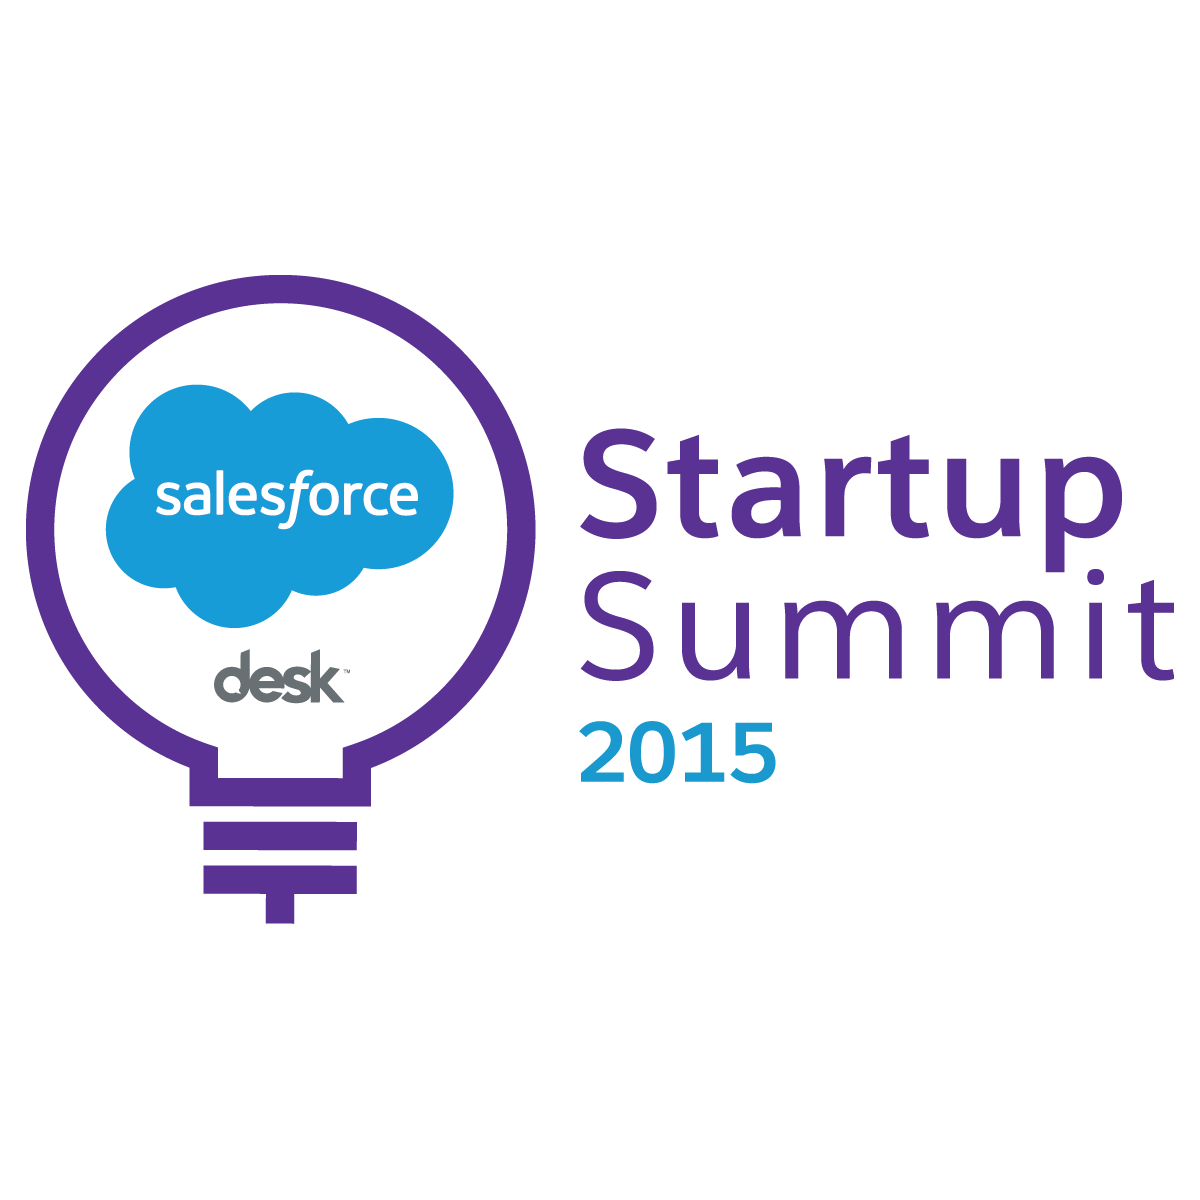 Join us at our Startup Summit on 6/25 & hear from the ever cool @davidchang & others. http://t.co/glWcSqIvPD http://t.co/tFta8FeAe4